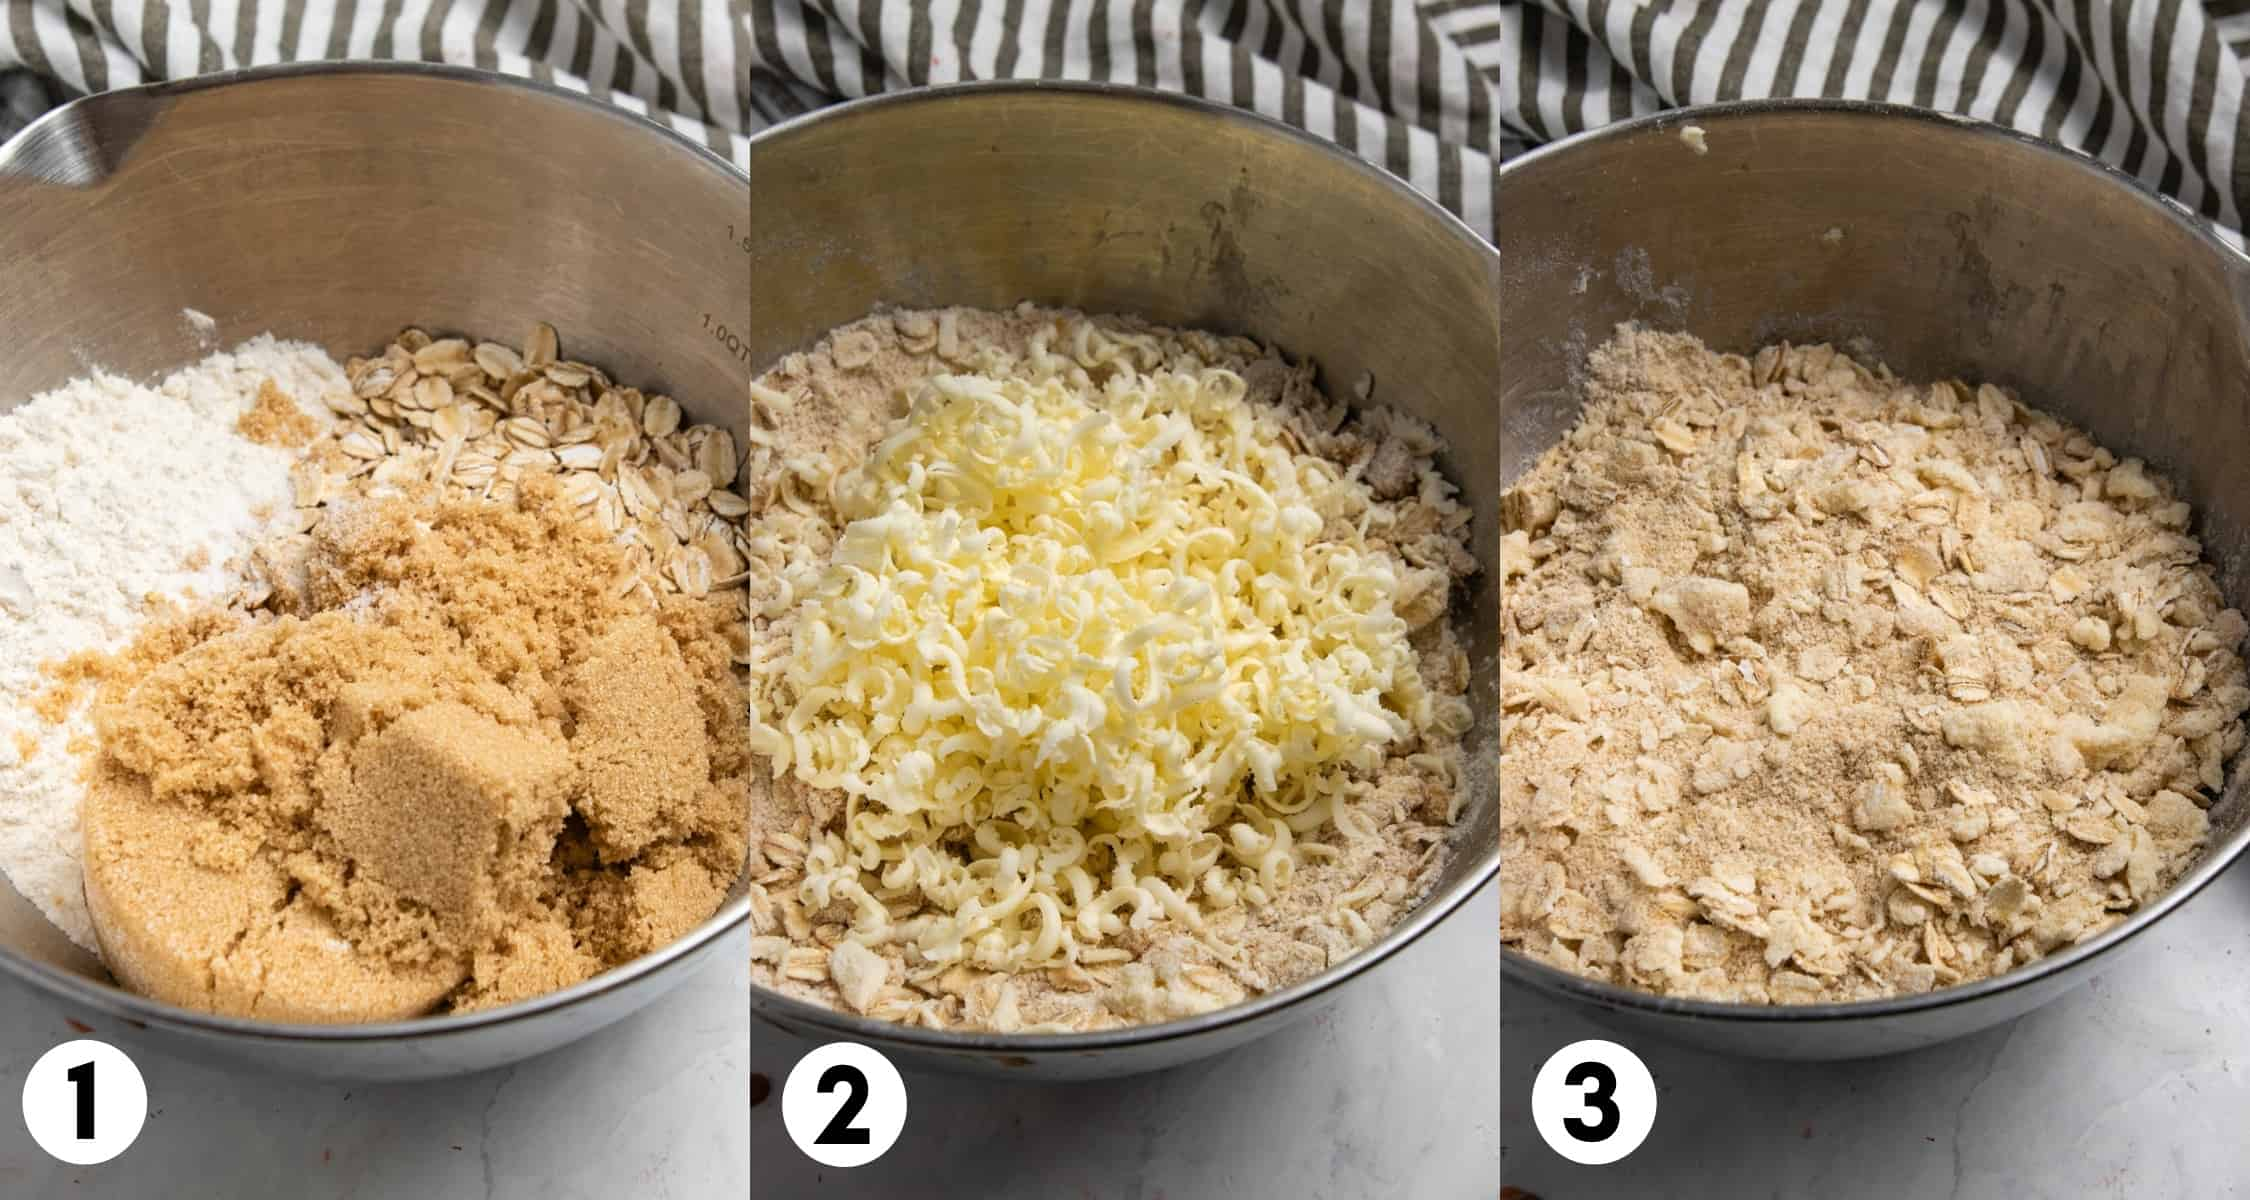 Oats and crumble topping mixed with butter in mixing bowl.